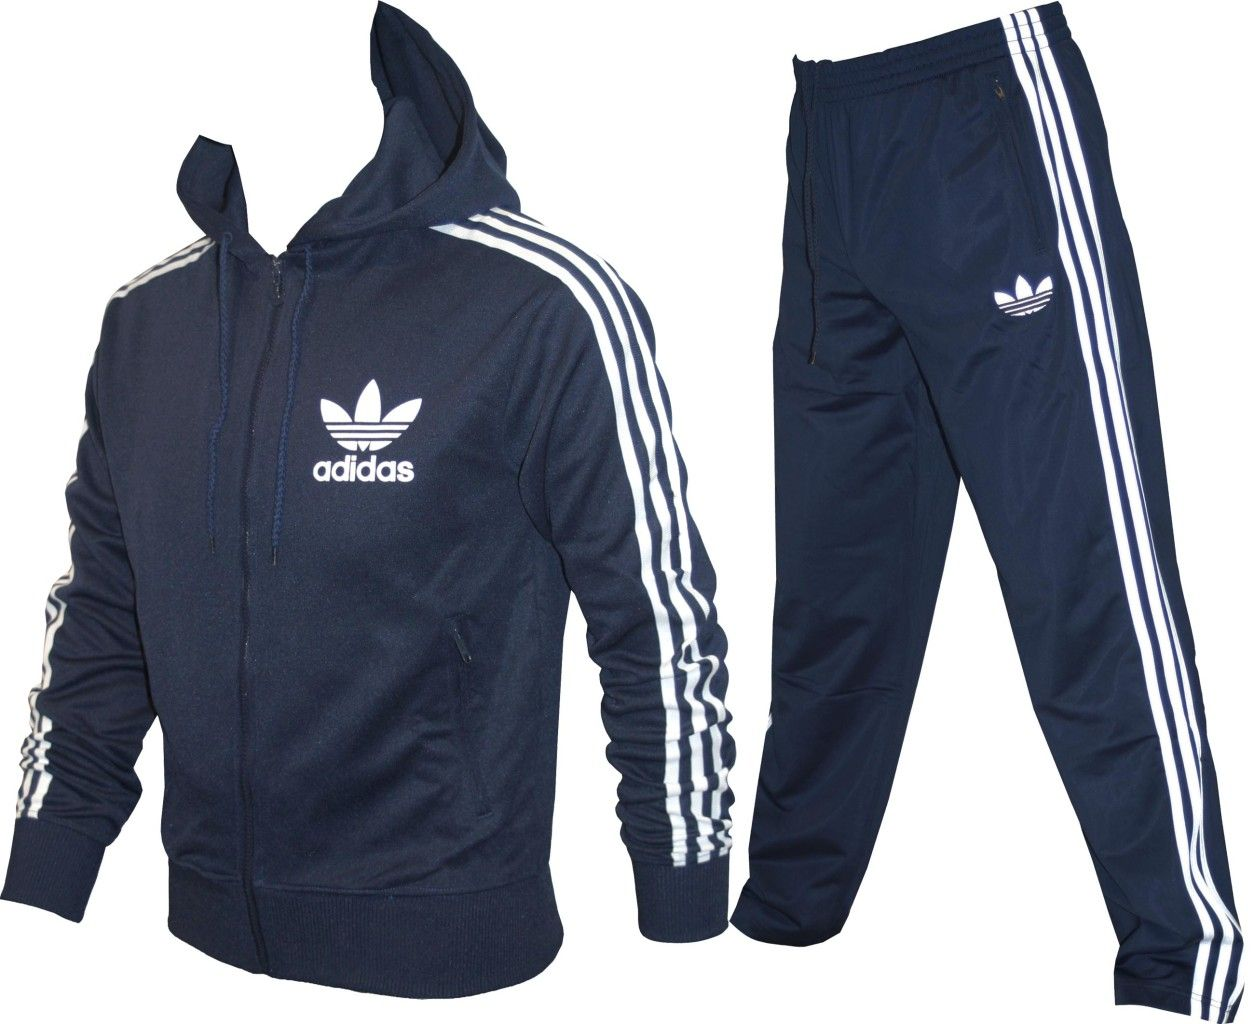 Details about MENS ADIDAS ORIGINALS 3 STRIPES TRACKSUIT NAVY